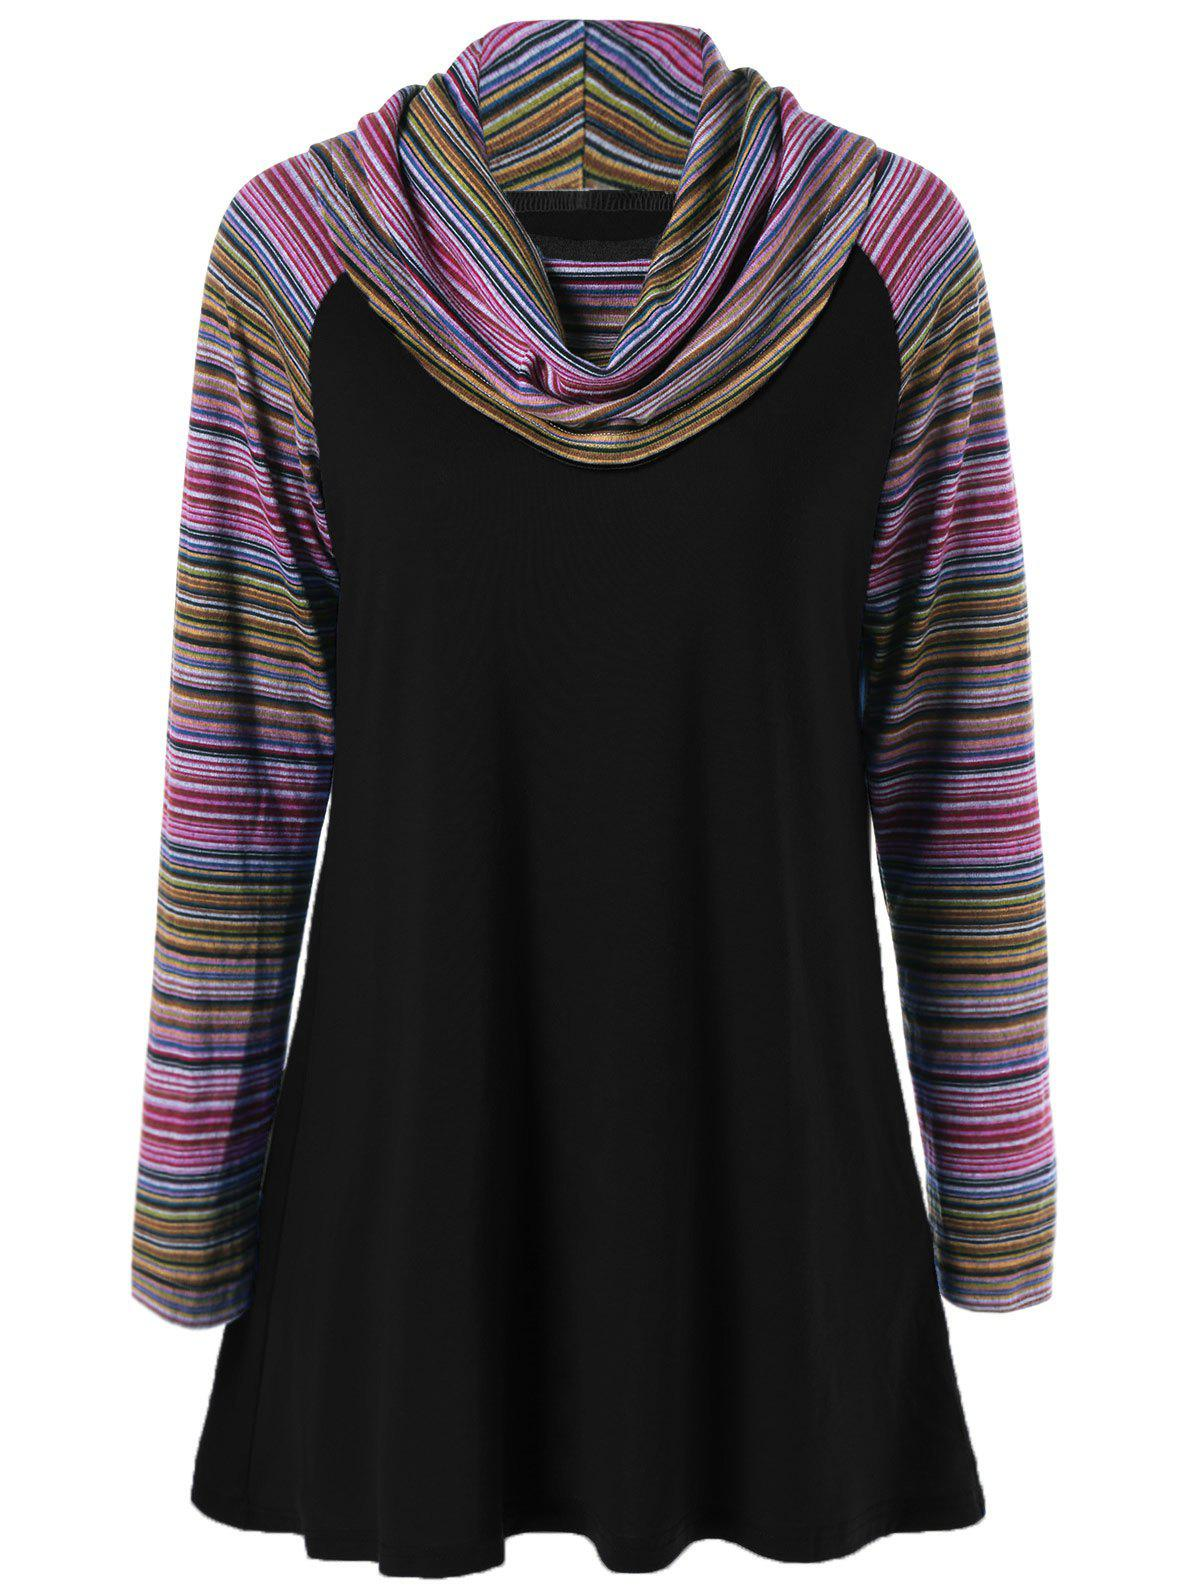 Cowl Neck Colorful Striped T-Shirt - BLACK M